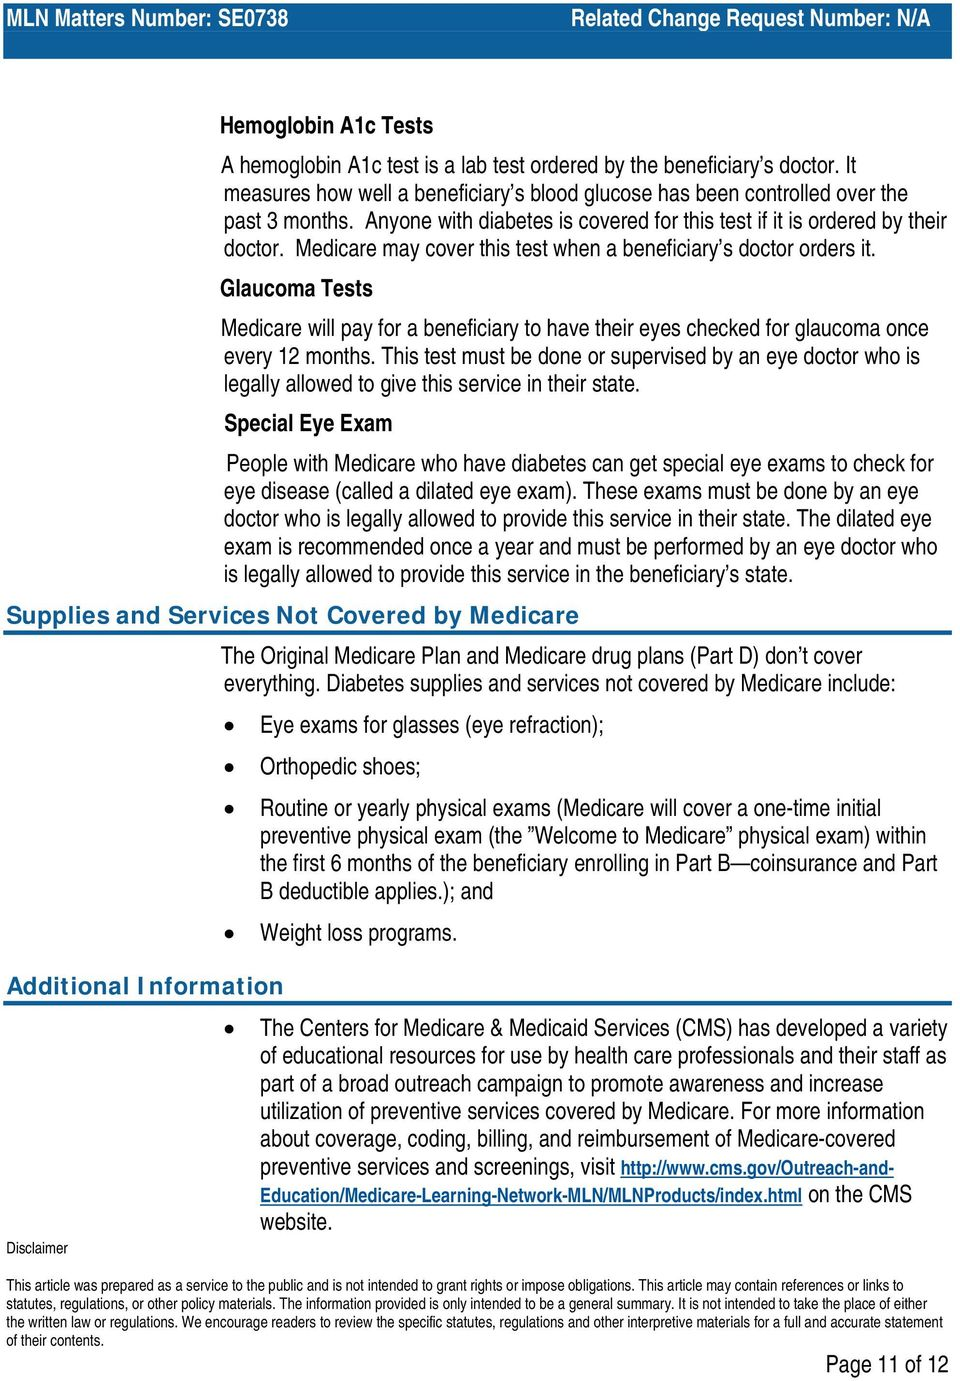 An Overview Of Medicare Covered Diabetes Supplies And Services Pdf